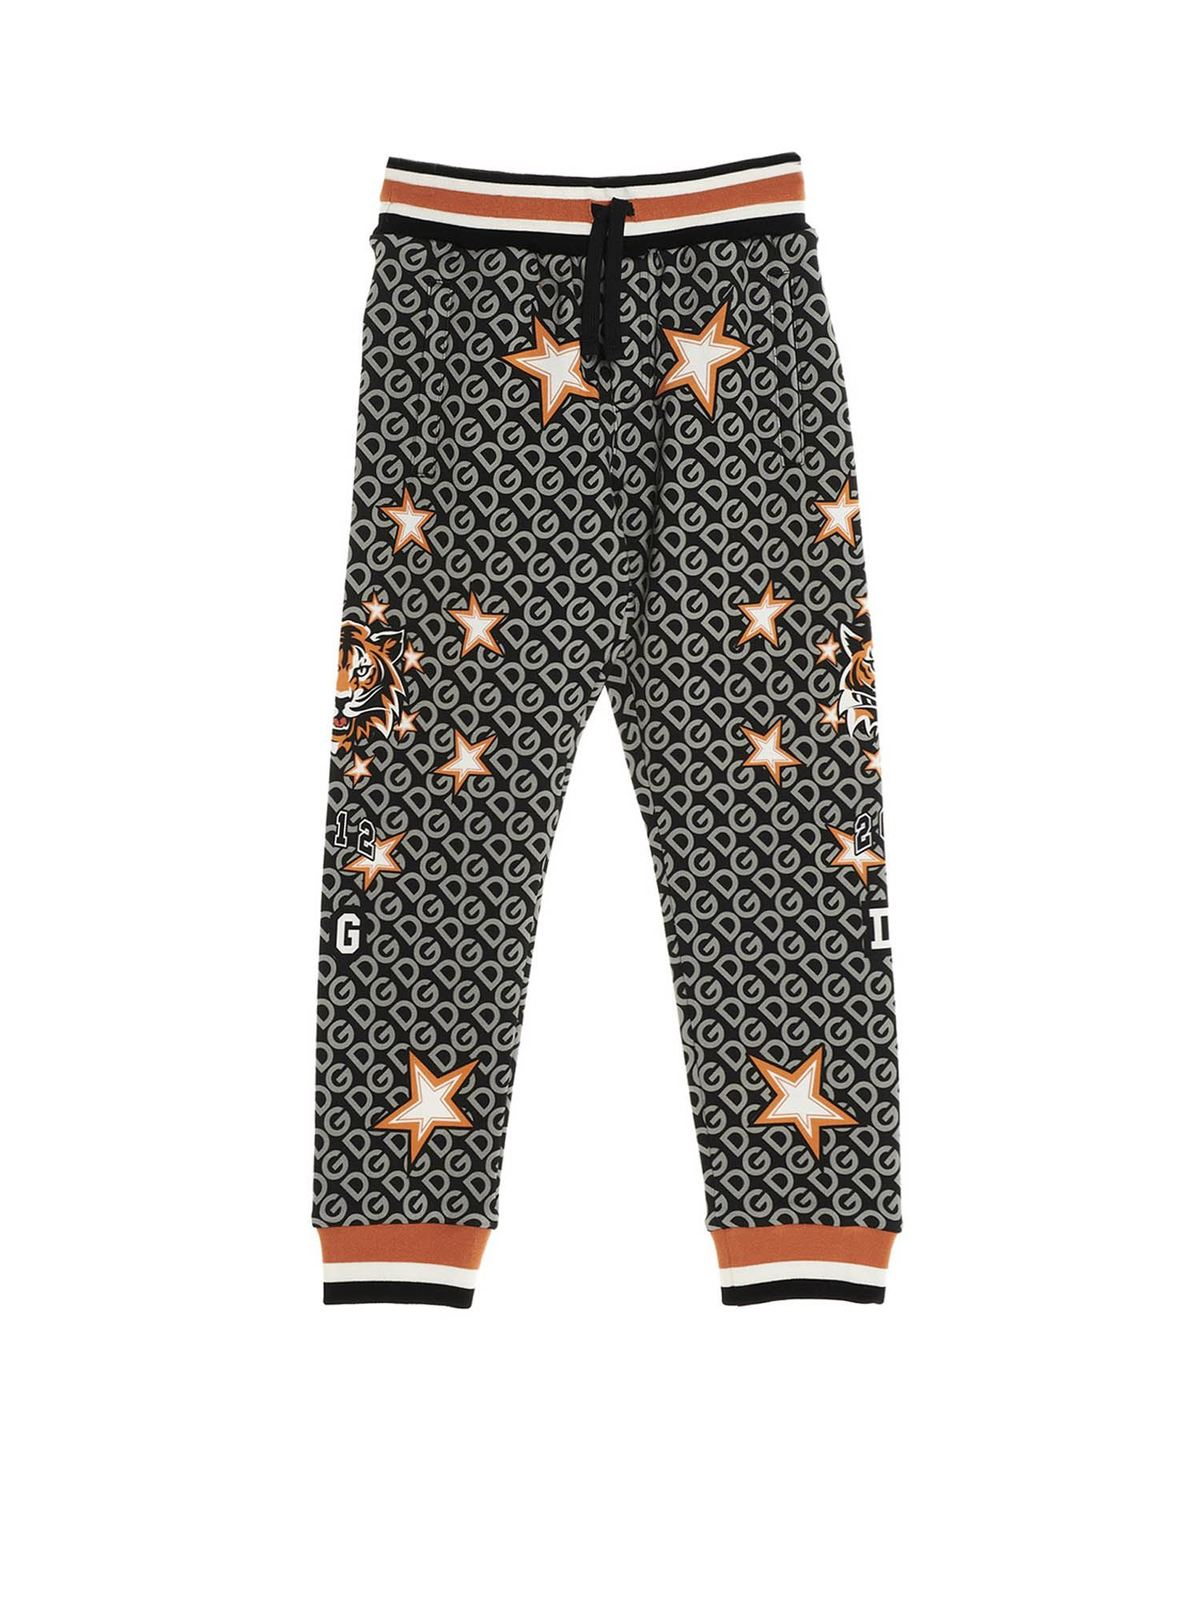 DOLCE & GABBANA JR FASHION TIGER PANTS IN GREY